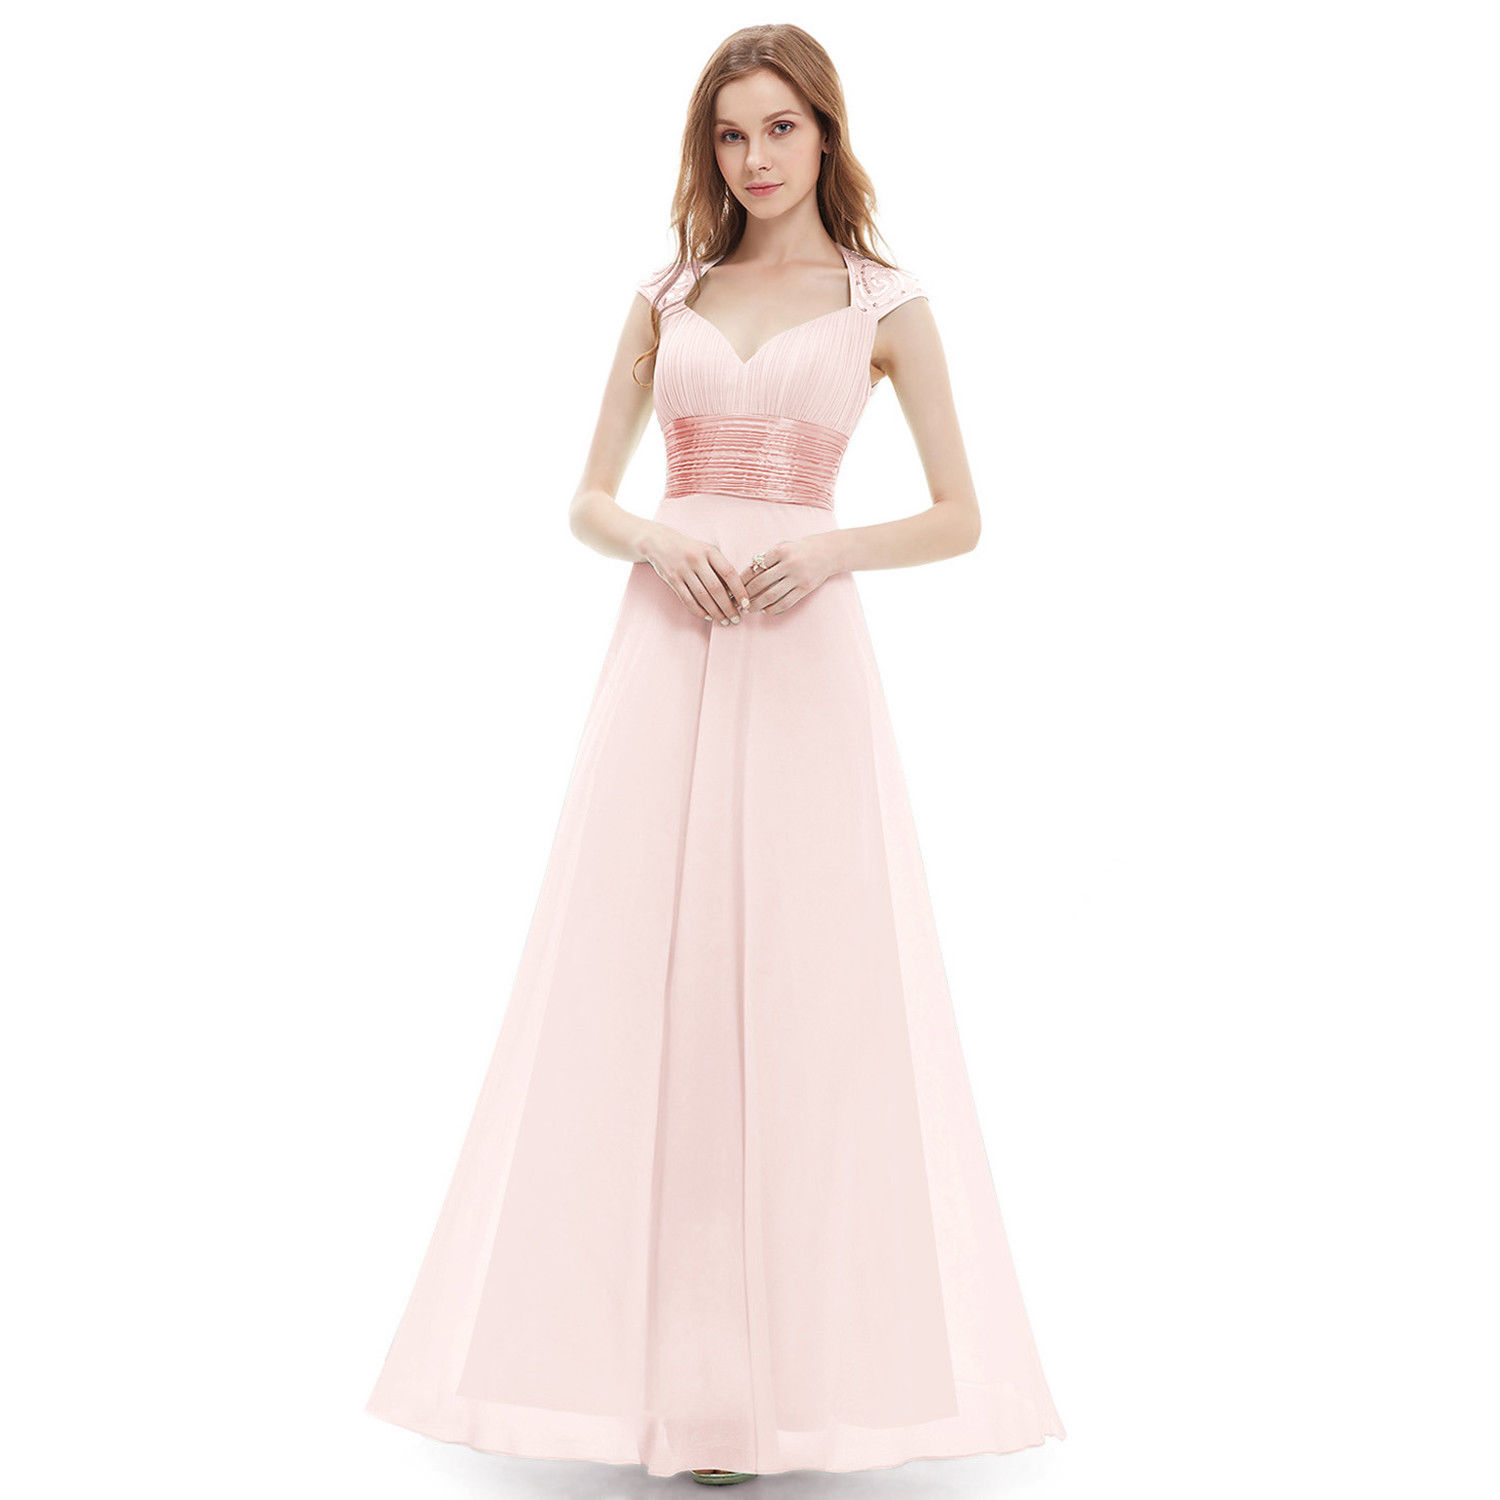 5ca8e3188d257 Long Chiffon Evening Formal Party Ball Gown Prom Bridesmaid Dress ...